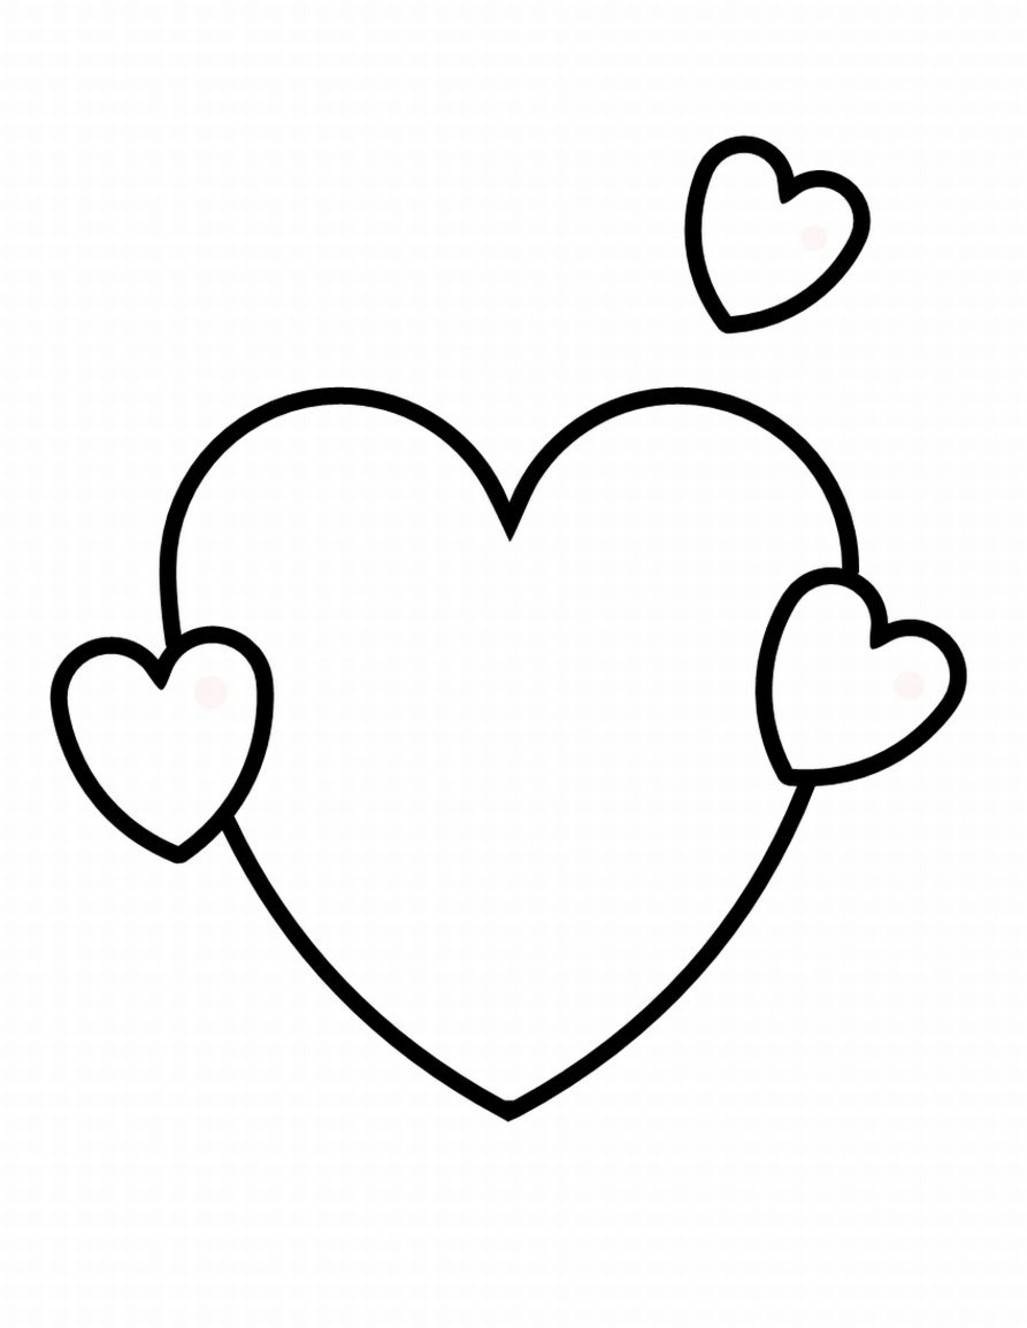 free printable heart coloring pages for kids 20 free printable hearts coloring pages heart kids pages printable coloring free for